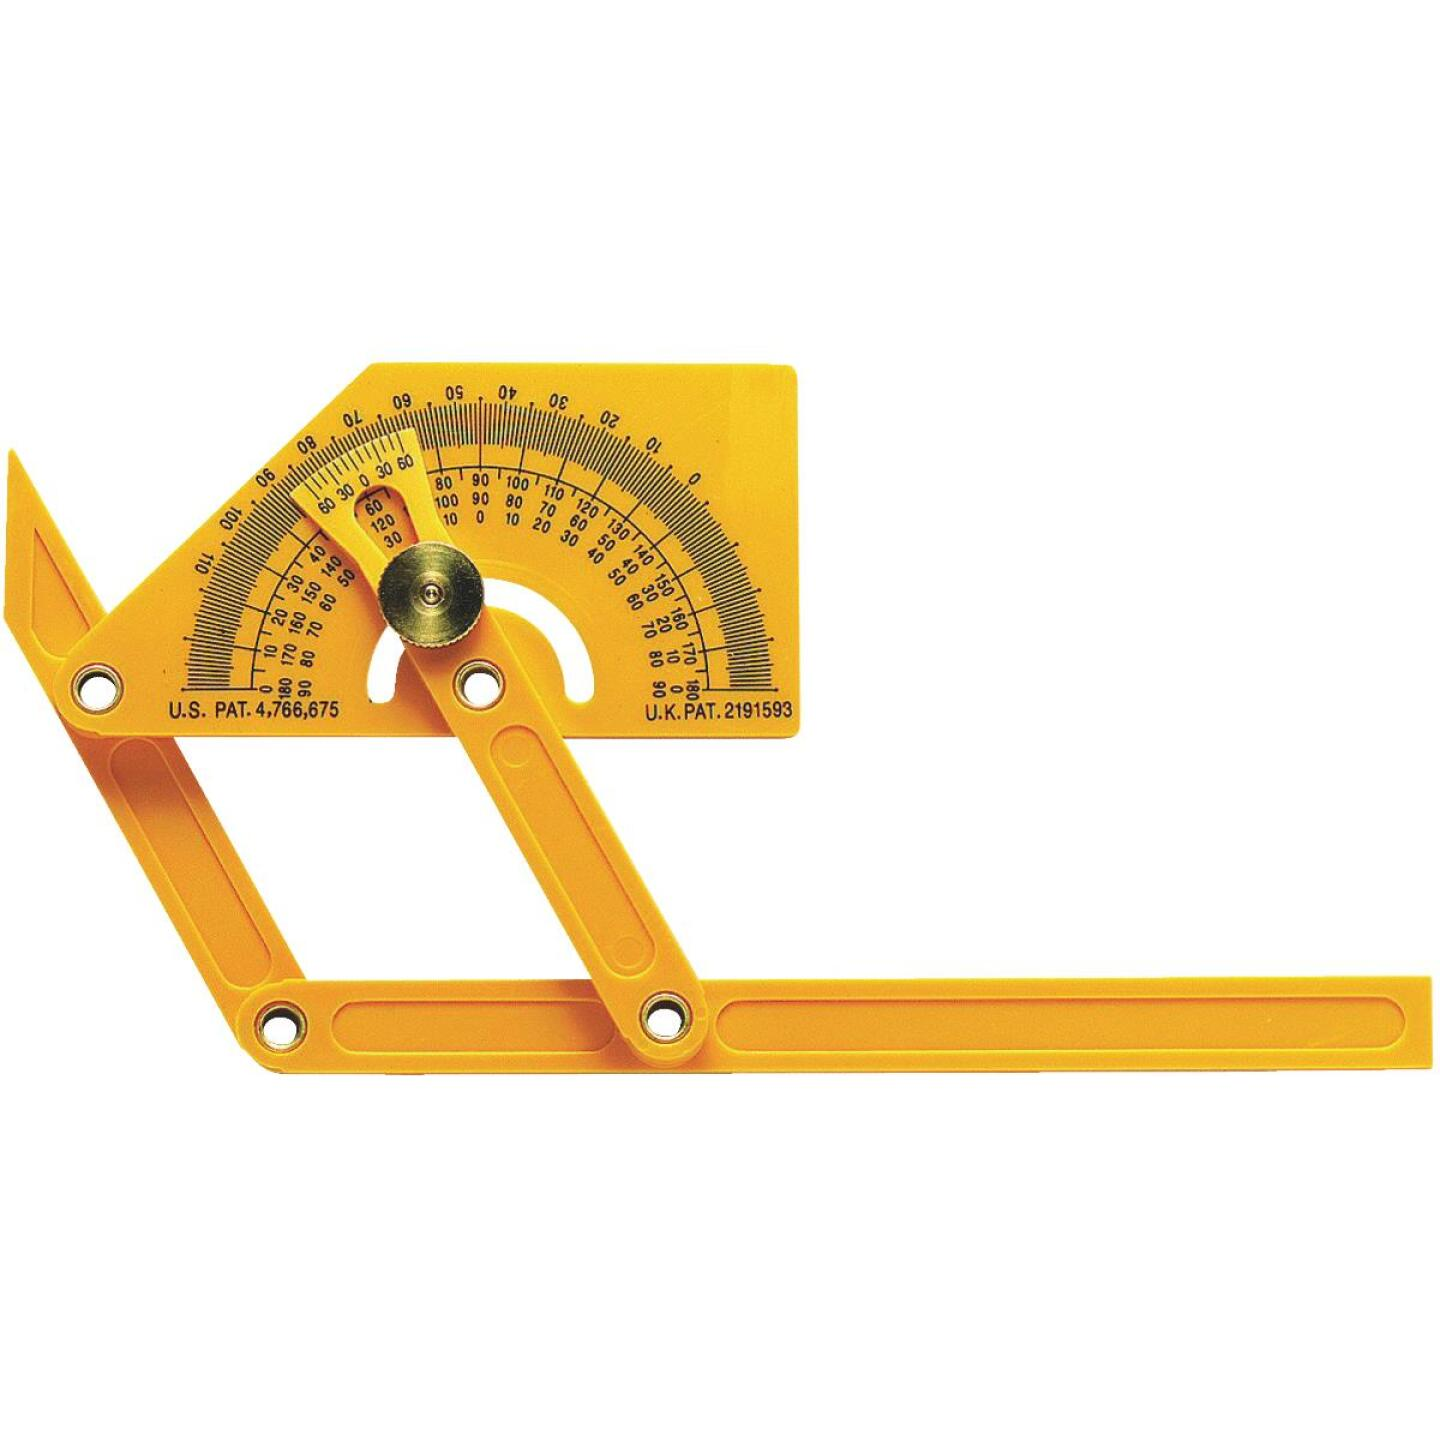 General Tools Plastic Protractor and Angle Finder Image 1